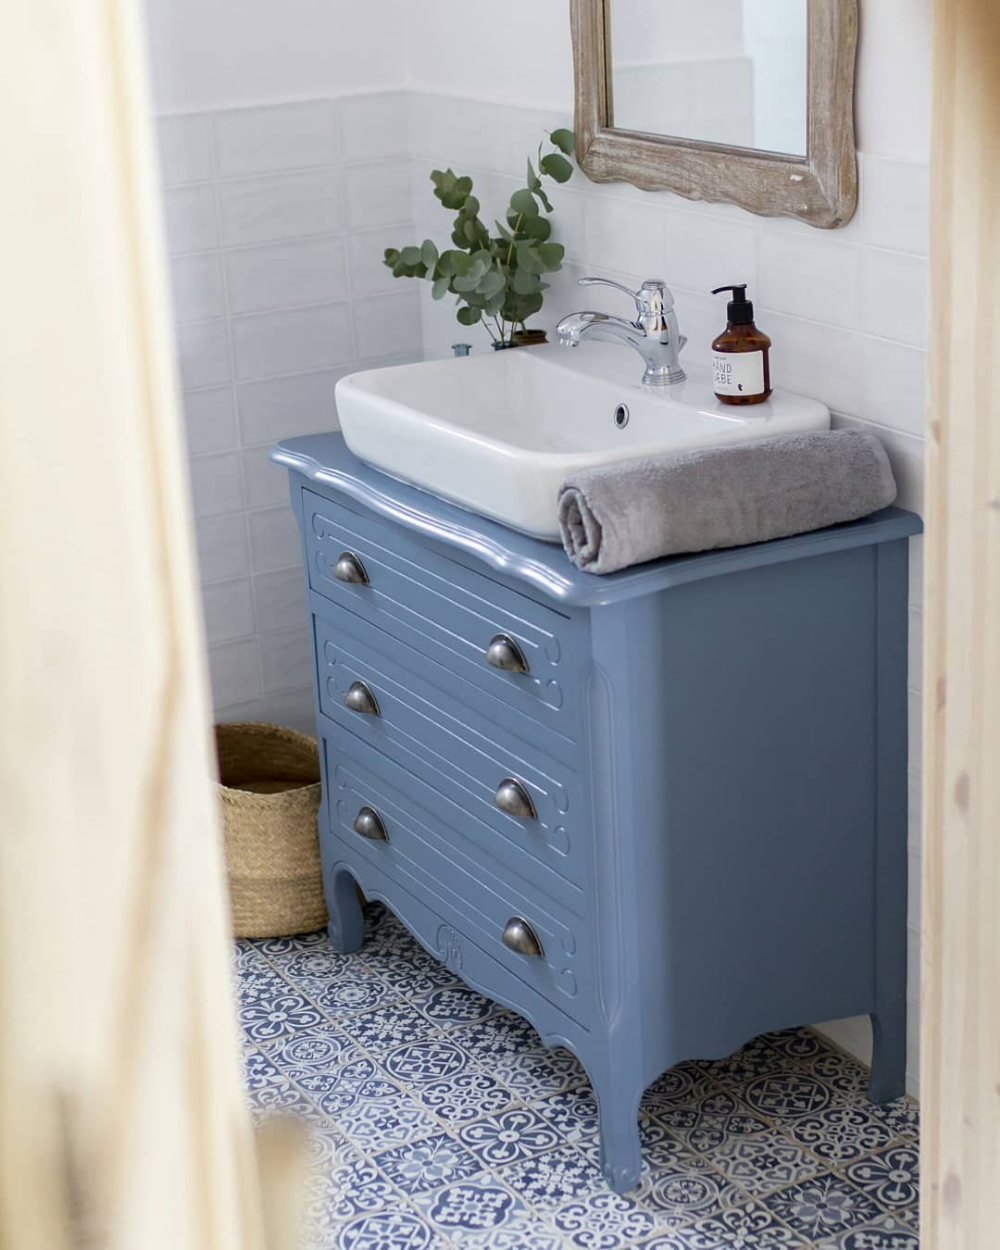 Top 7 Fresh Bathroom Trends 2020 Great Ideas For New Season 44 Photos In 2020 Bathroom Trends